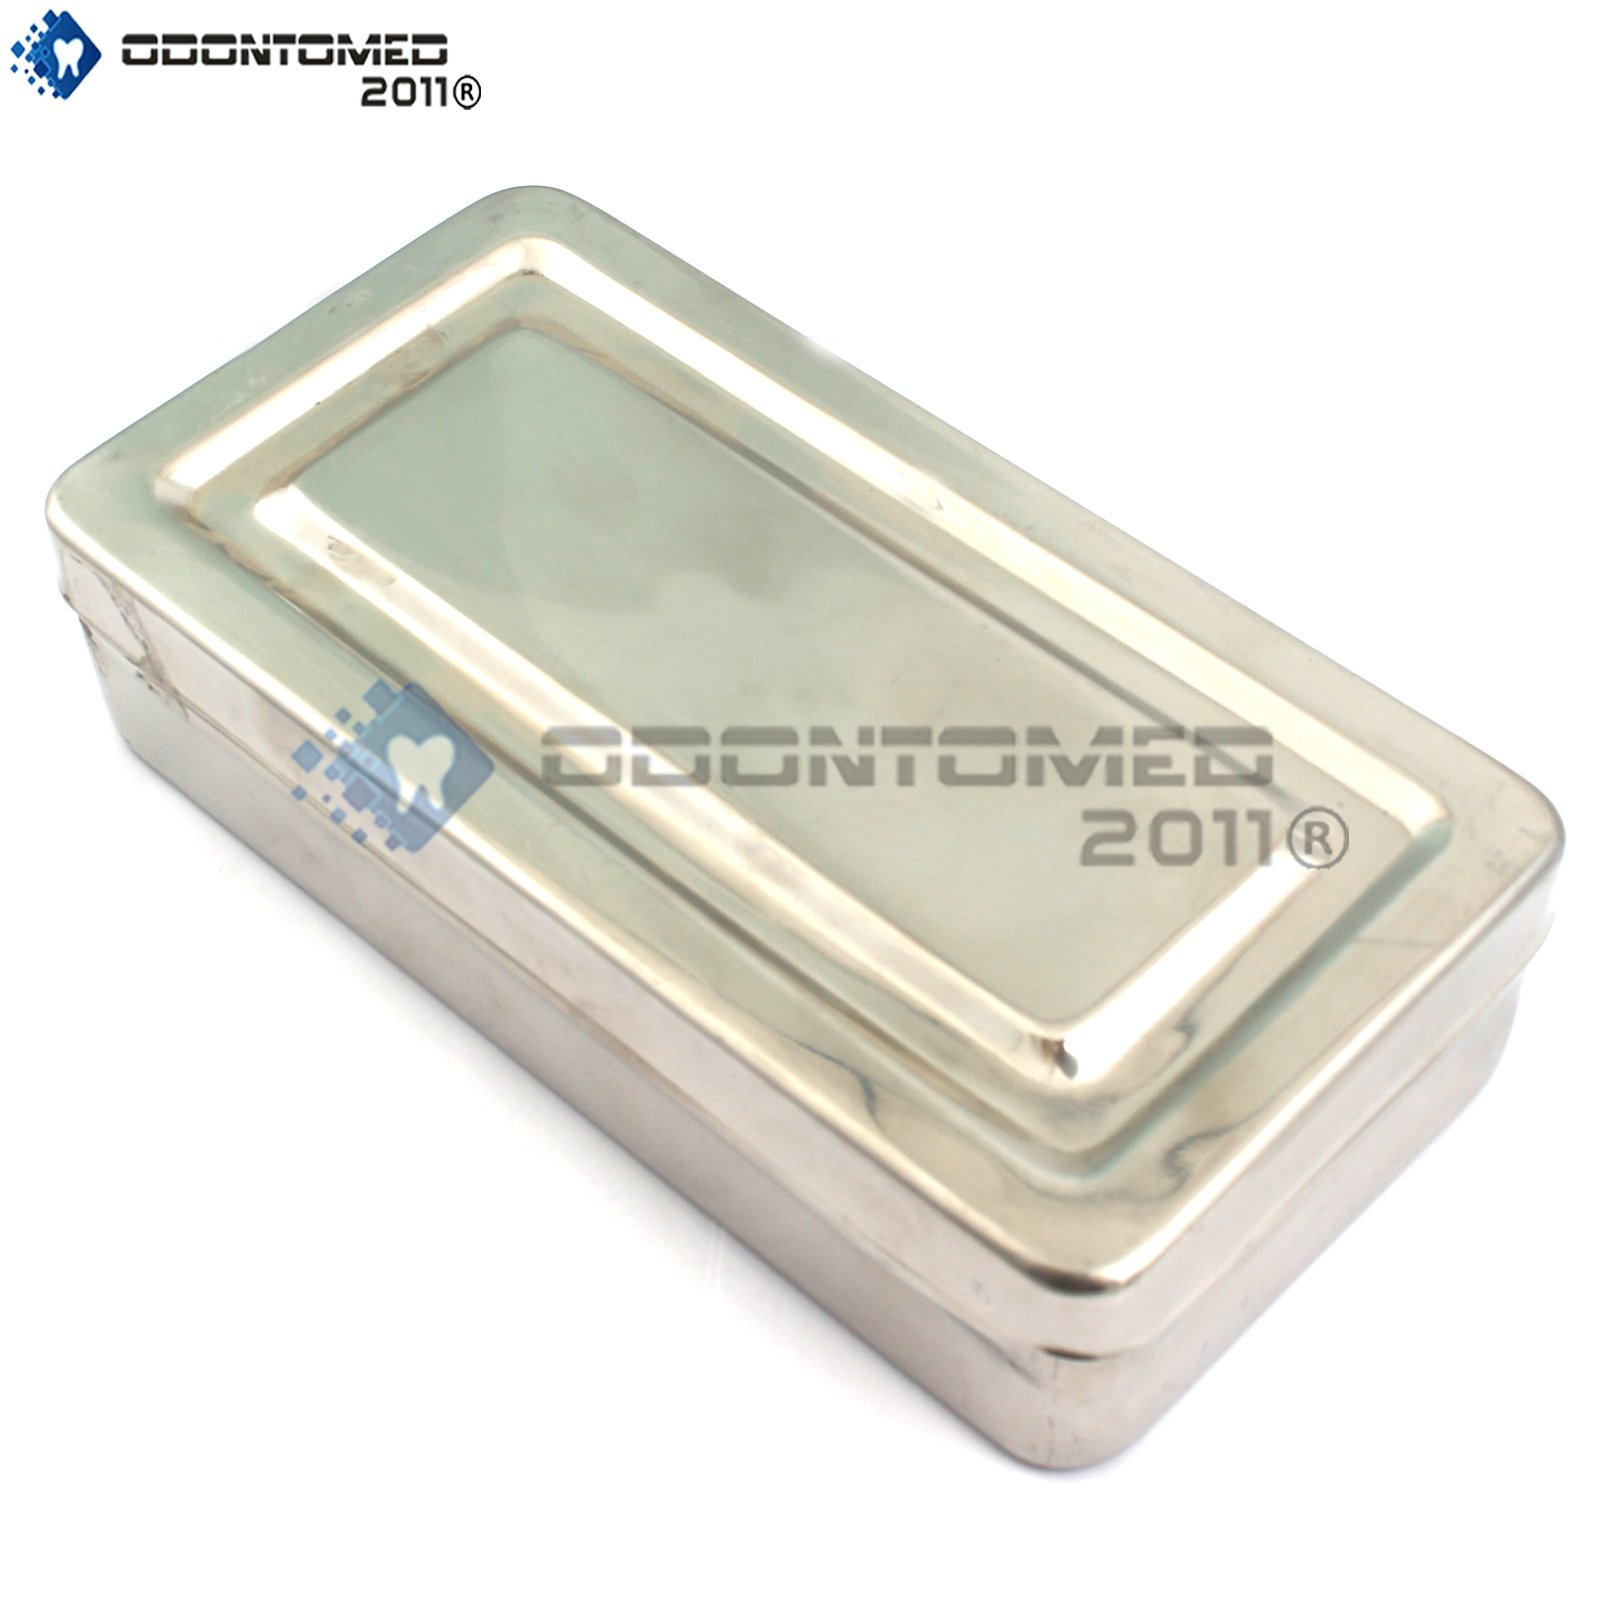 OdontoMed2011® 7''X3''X1.5'' INSTRUMENTS BOX STAINLESS STEEL HIGH QUALITY TRAY ODM